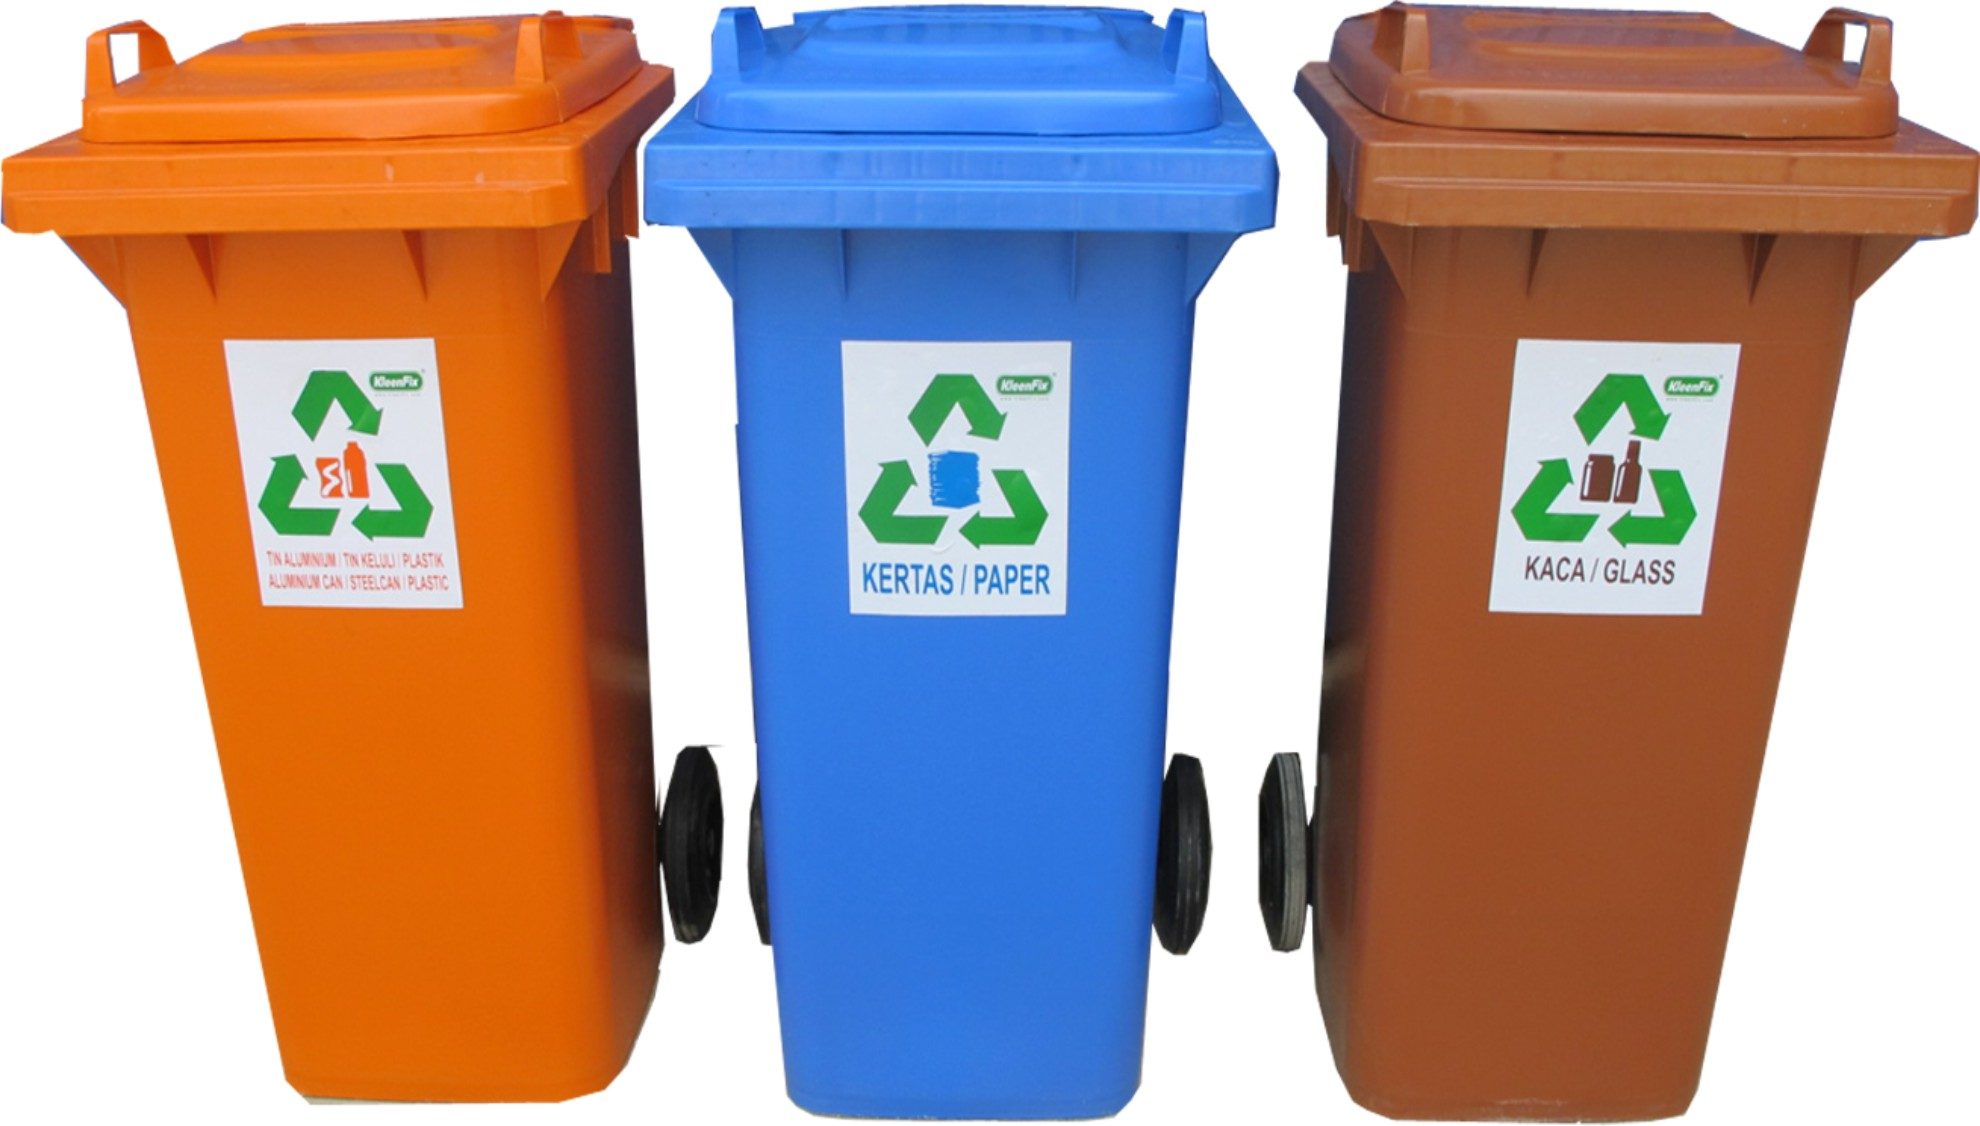 The Difference Of Colourful Bins